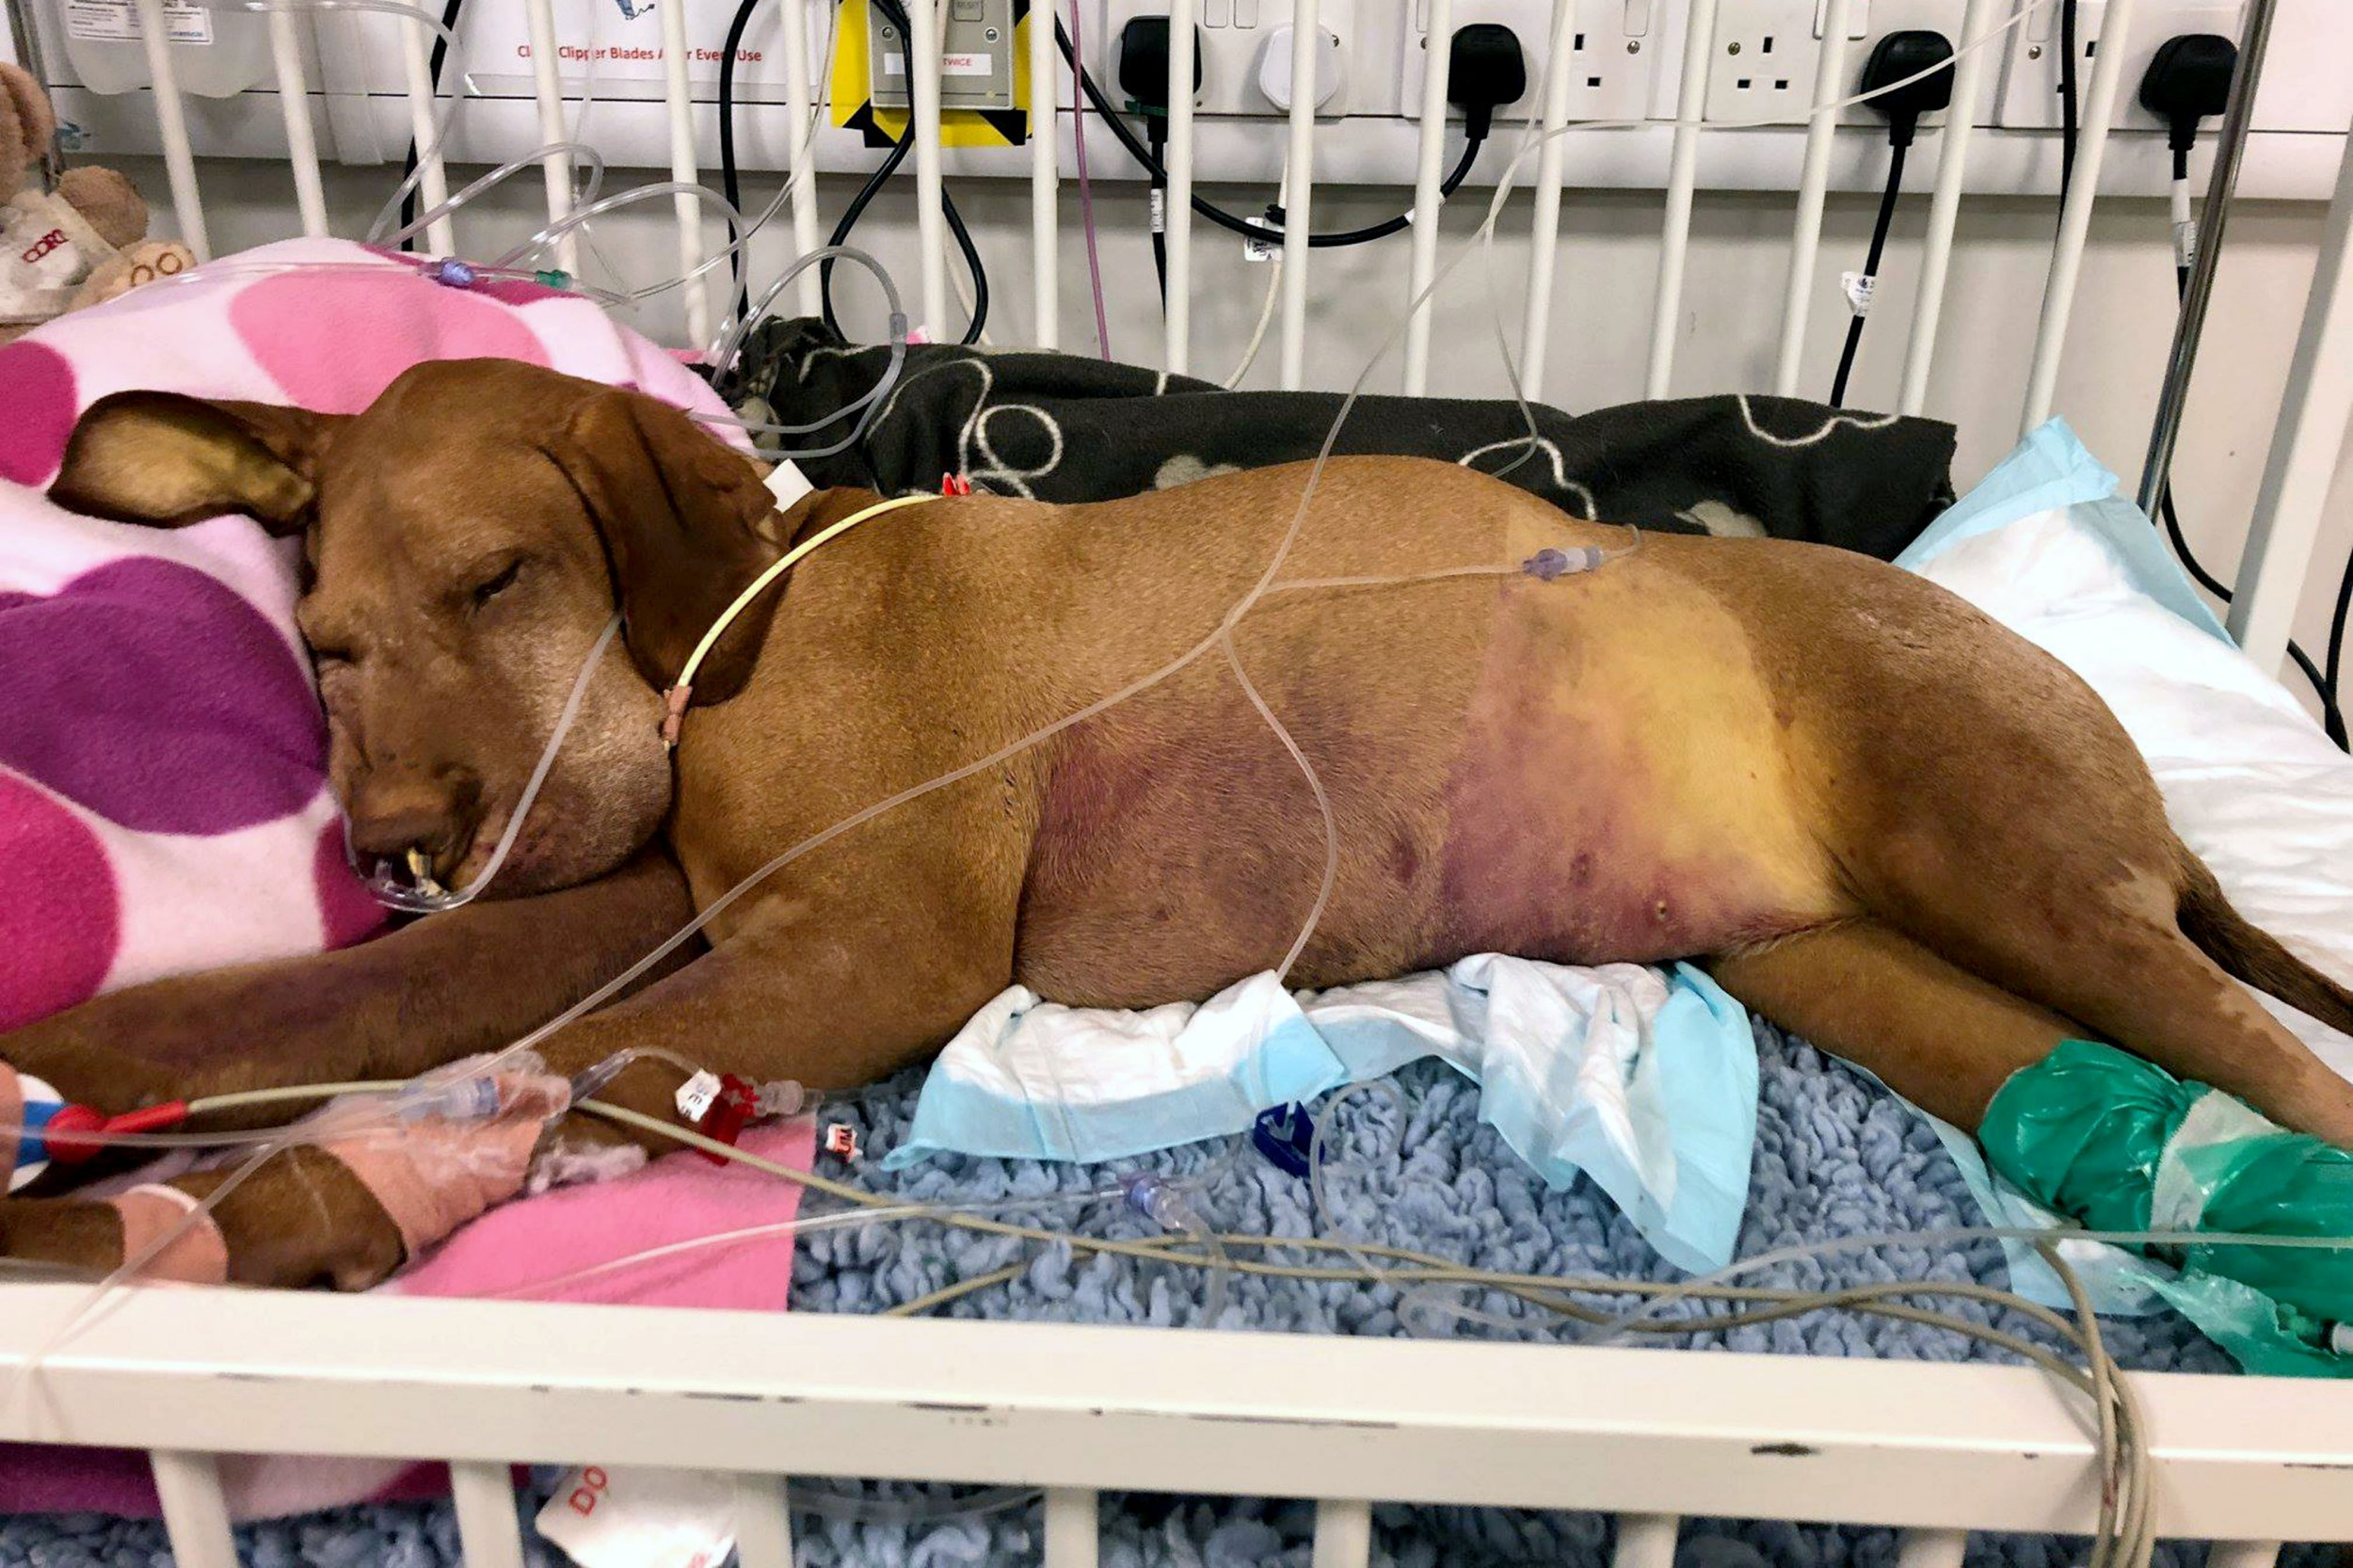 PIC FROM Caters News - (PICTURED: Ruby, a Hungarian Vizsla, from Acton, West London, died after eating chocolate brownies. Pictured on life support) - The heartbreaking images of a pooch on life support have been released by her owner after she tragically died from eating chocolate brownies. Ruby a Hungarian Vizsla had cheekily stolen two brownies which contained Xylitol, a form of sweetener, which is toxic to dogs and causes liver failure. Owner Kate Chacksfield, 51, was left heartbroken when Ruby fell ill 36 hours after consuming the brownies which she had only made in a bid to reduce her own sugar intake.SEE CATERS COPY